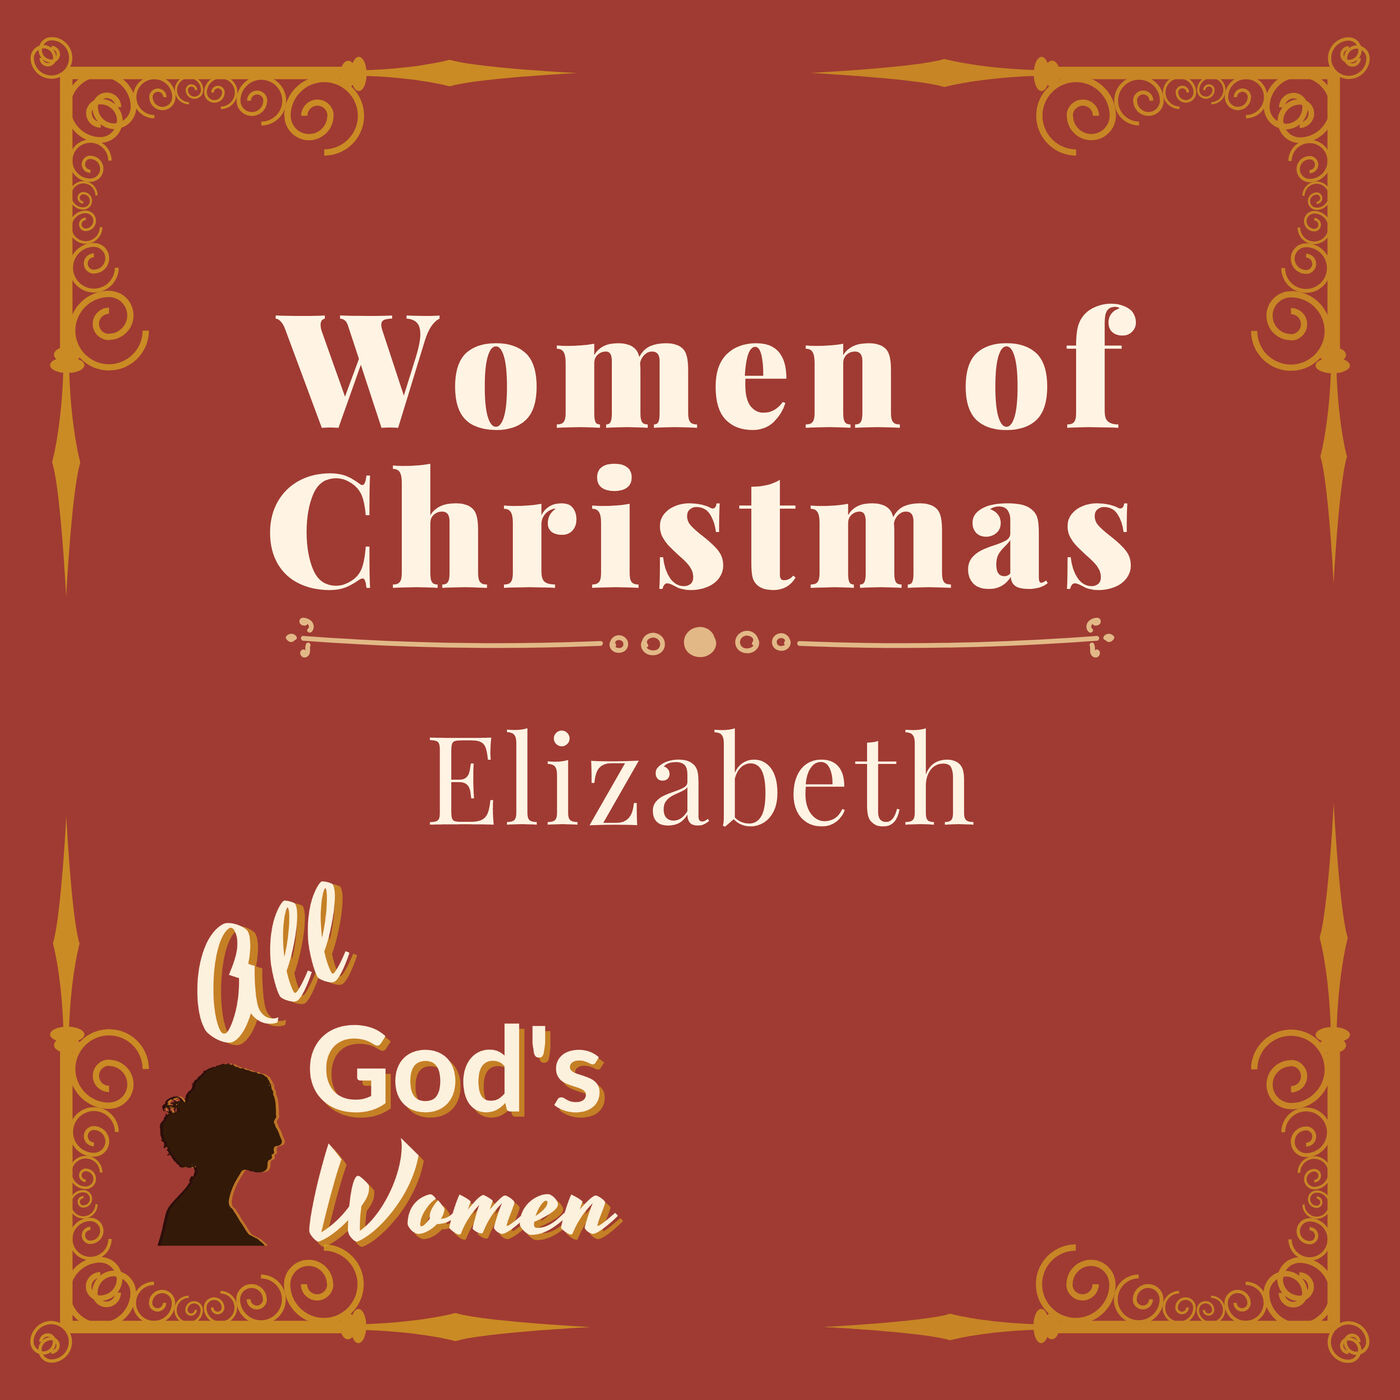 Women of Christmas: Elizabeth